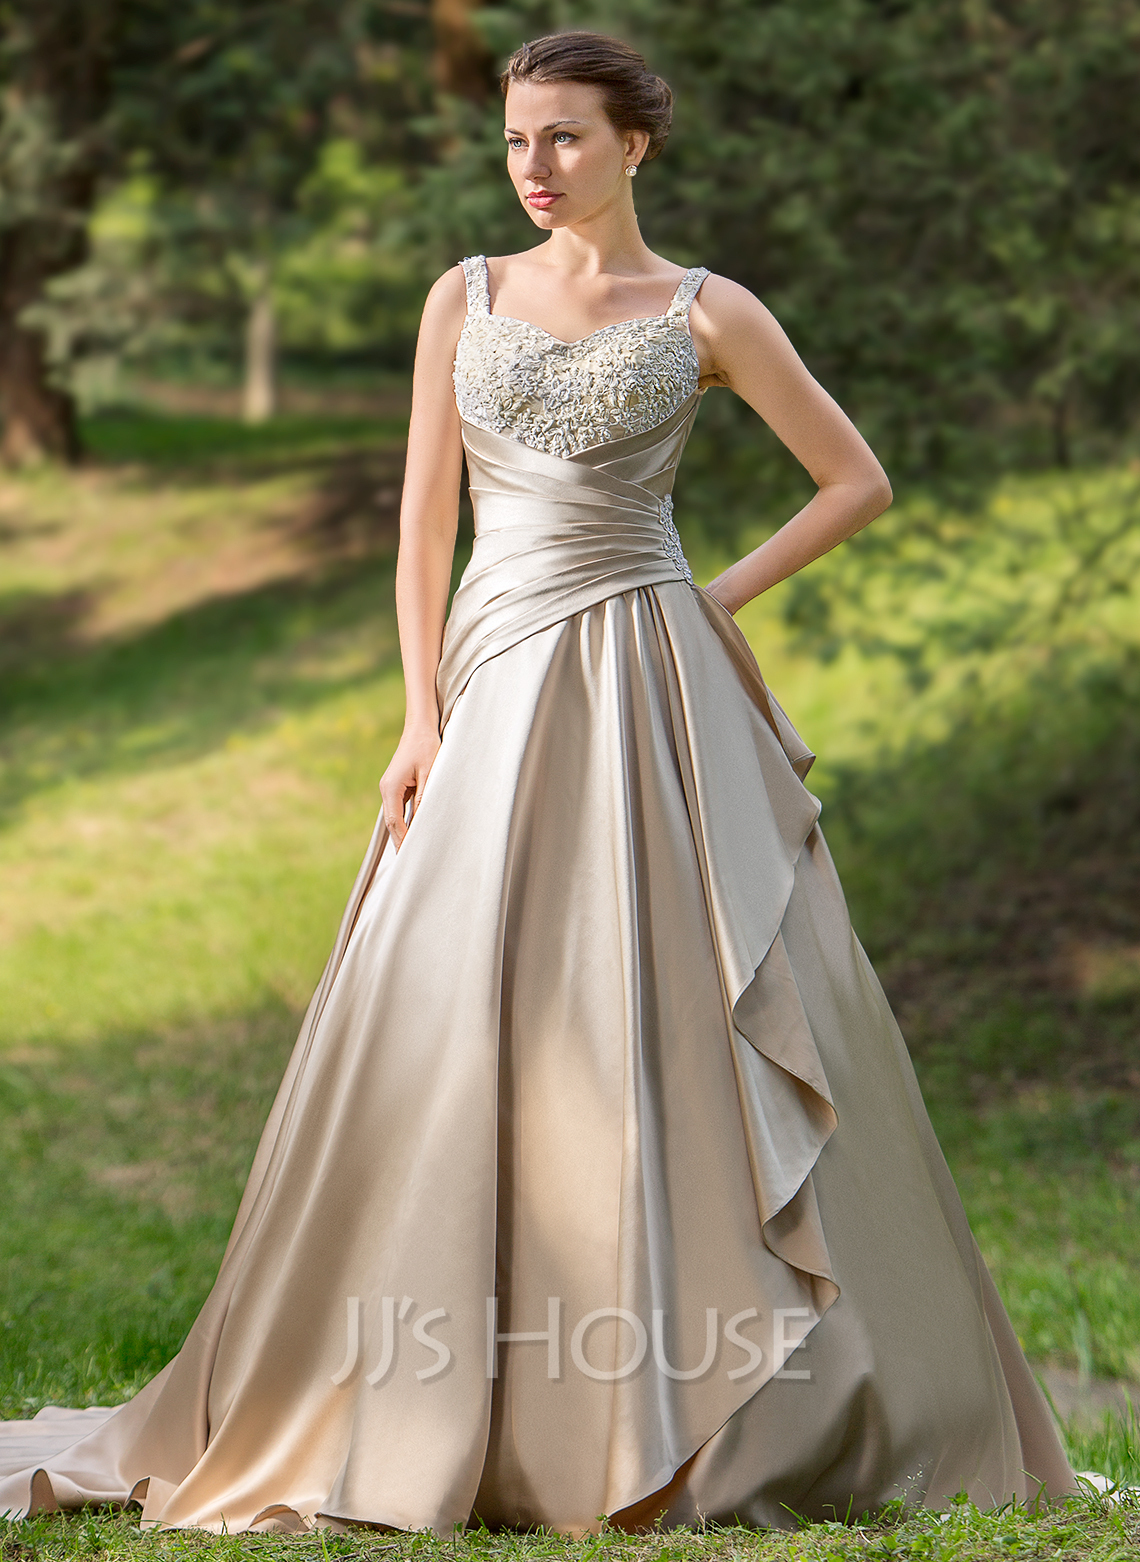 Ball Gown Sweetheart Court Train Satin Wedding Dress With Ruffle Beading Appliques Lace Cascading Ruffles g color wedding dresses Home Wedding Dresses Loading zoom